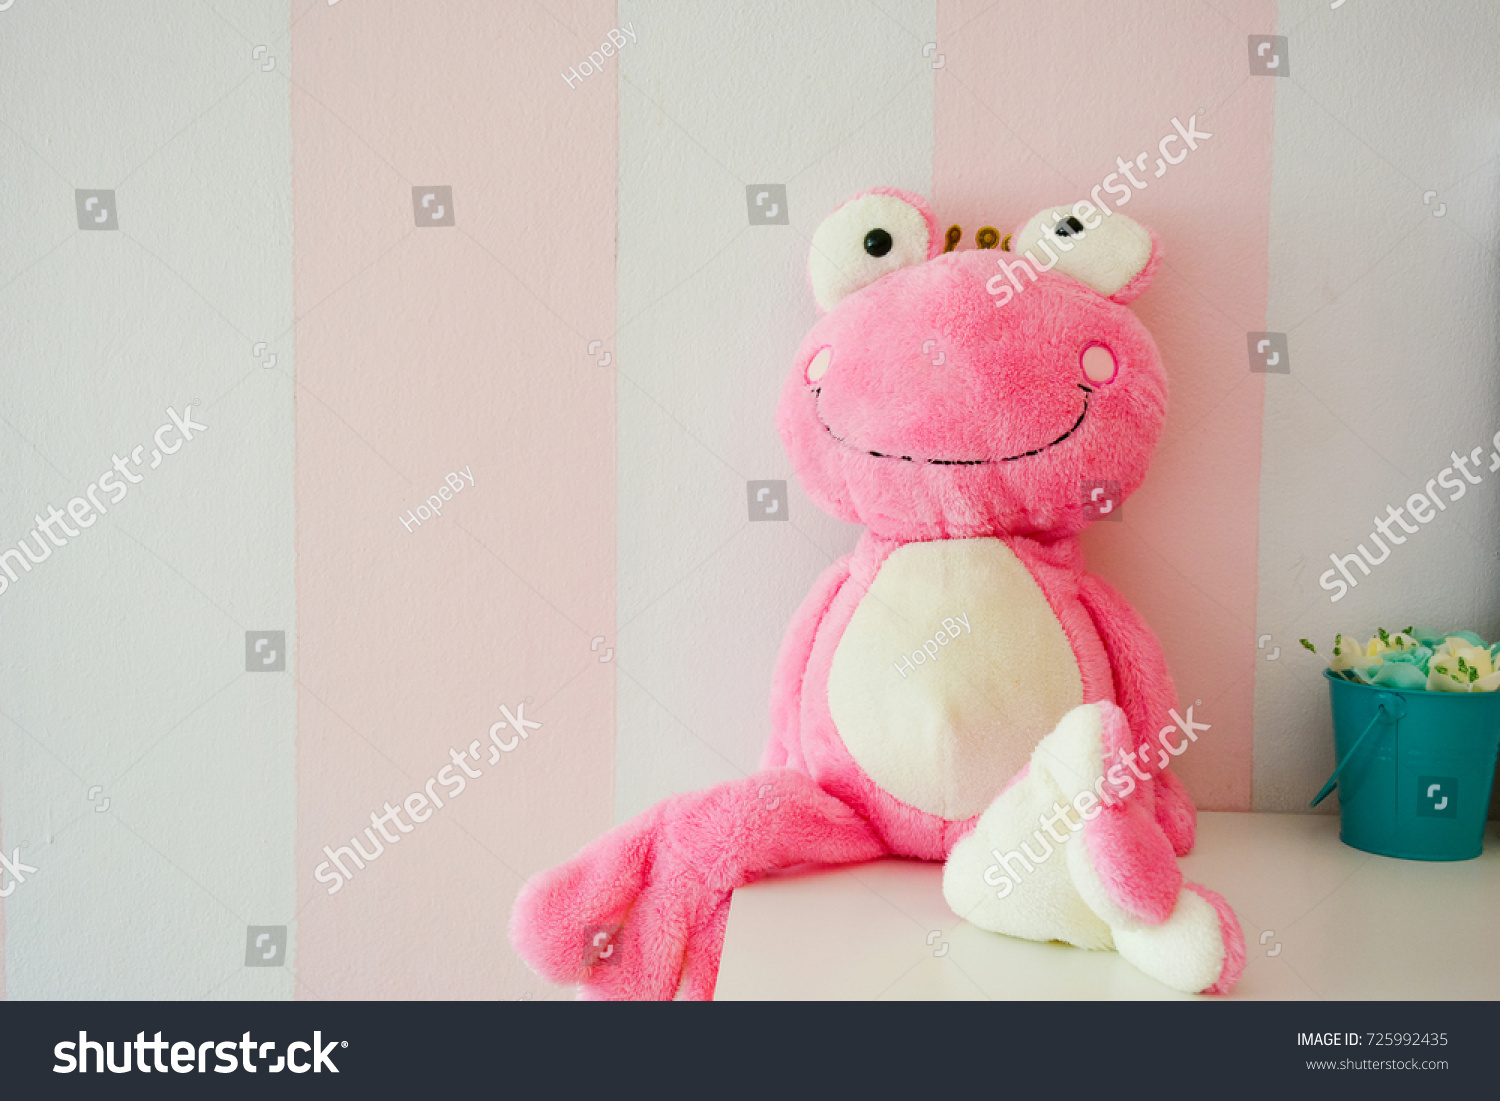 Frog doll over pink and white wall.